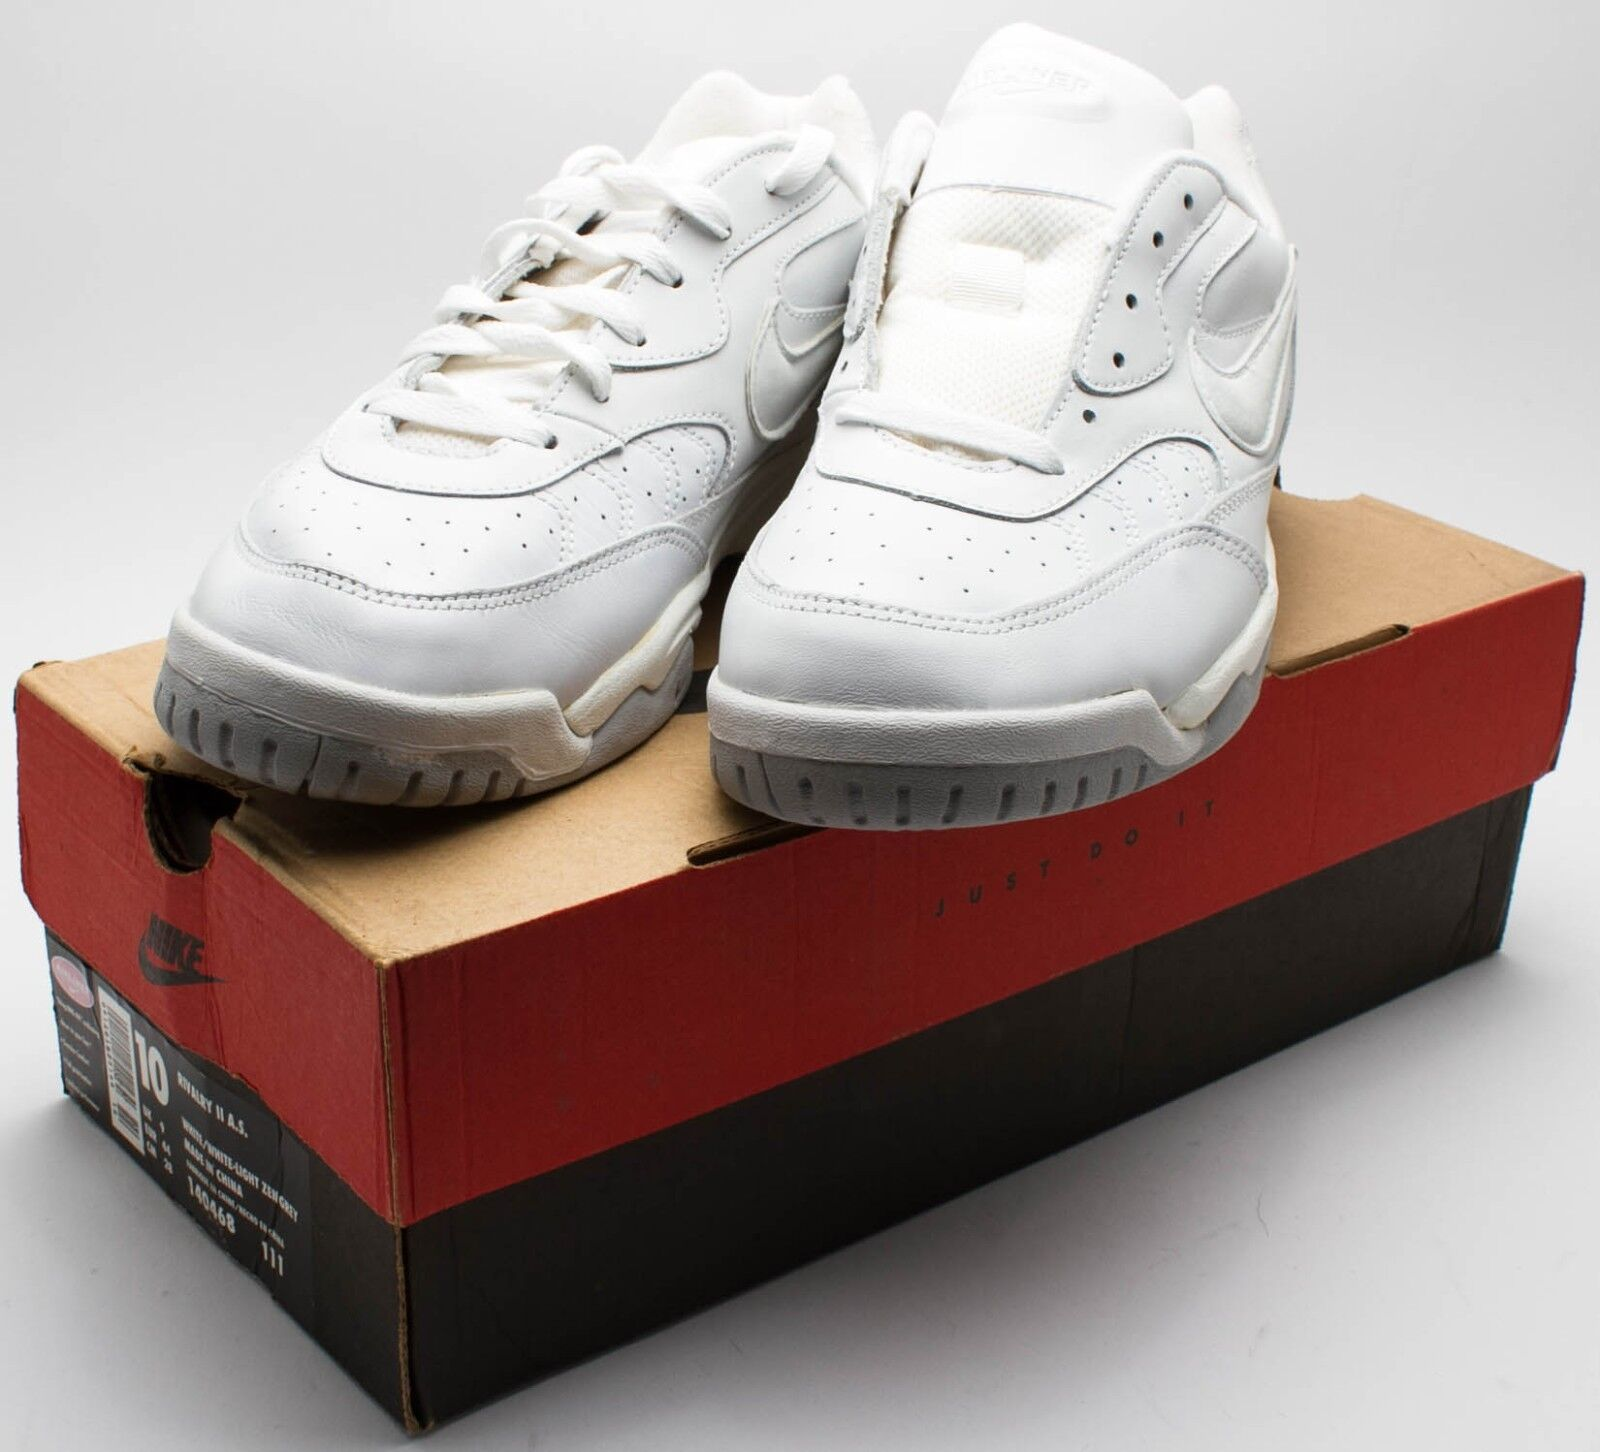 Nike homme OG Vintage 1998 Air Rivalry  II A.S. blanc/ Gris  Rivalry 140468-111 Sz 10 c15588